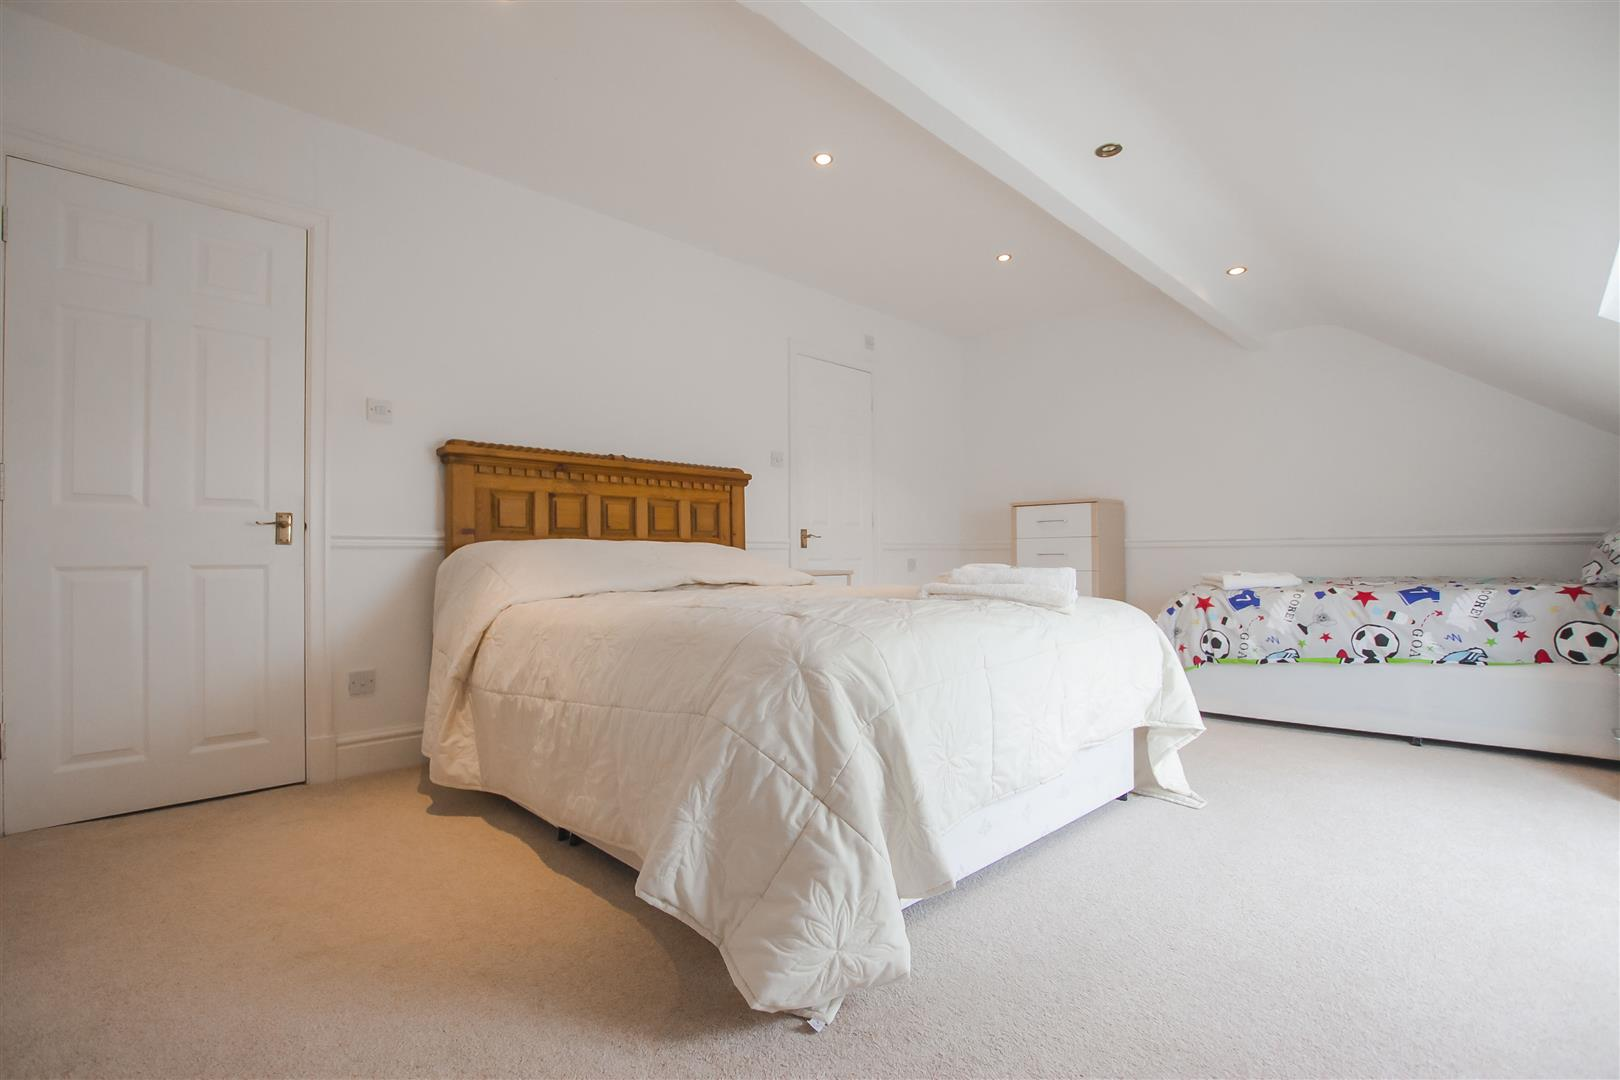 4 Bedroom Townhouse House For Sale - Image 17